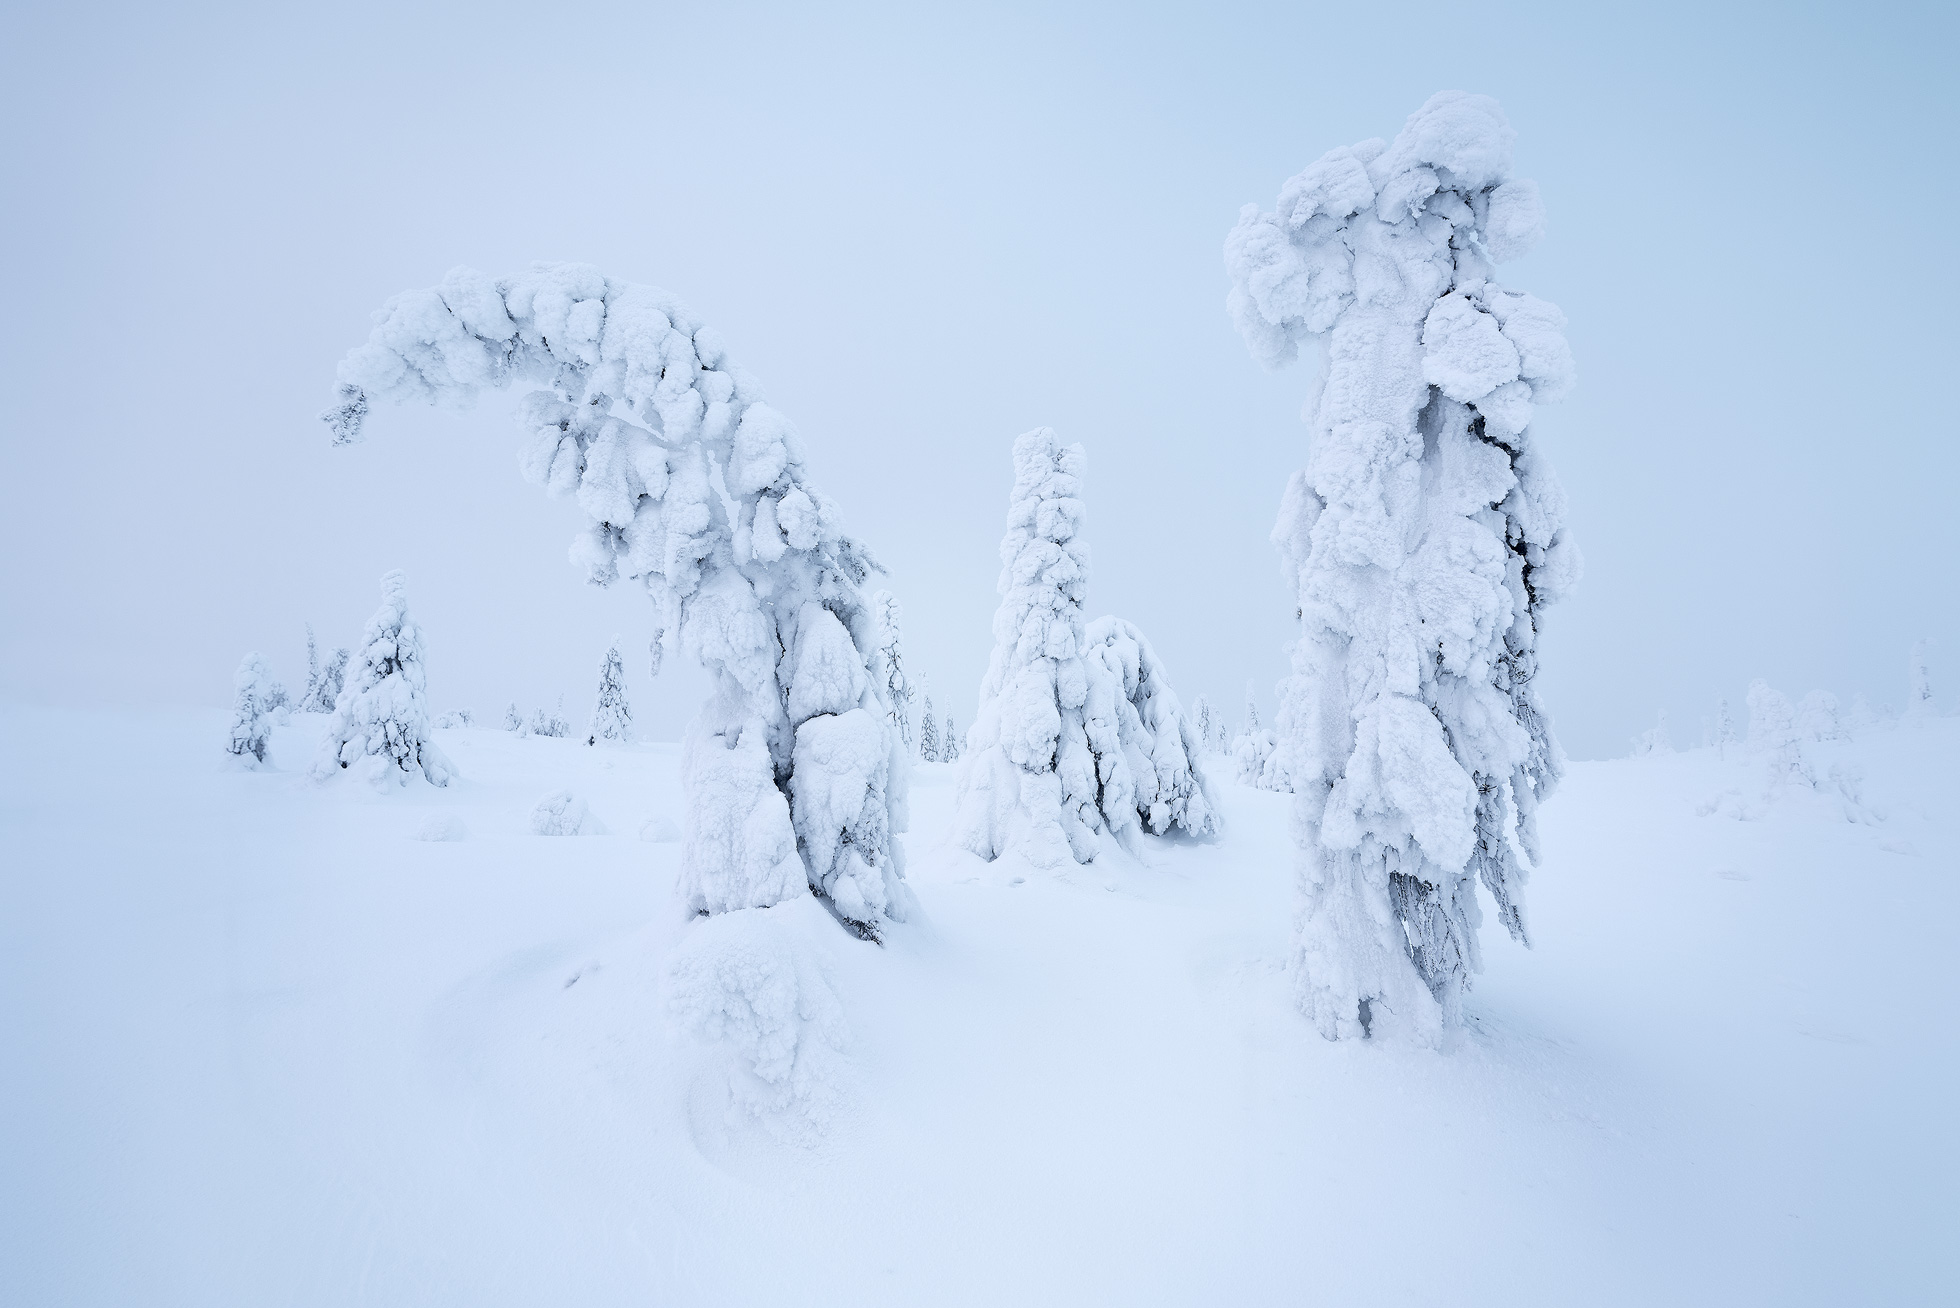 Winter tree landscape with snow covered trees